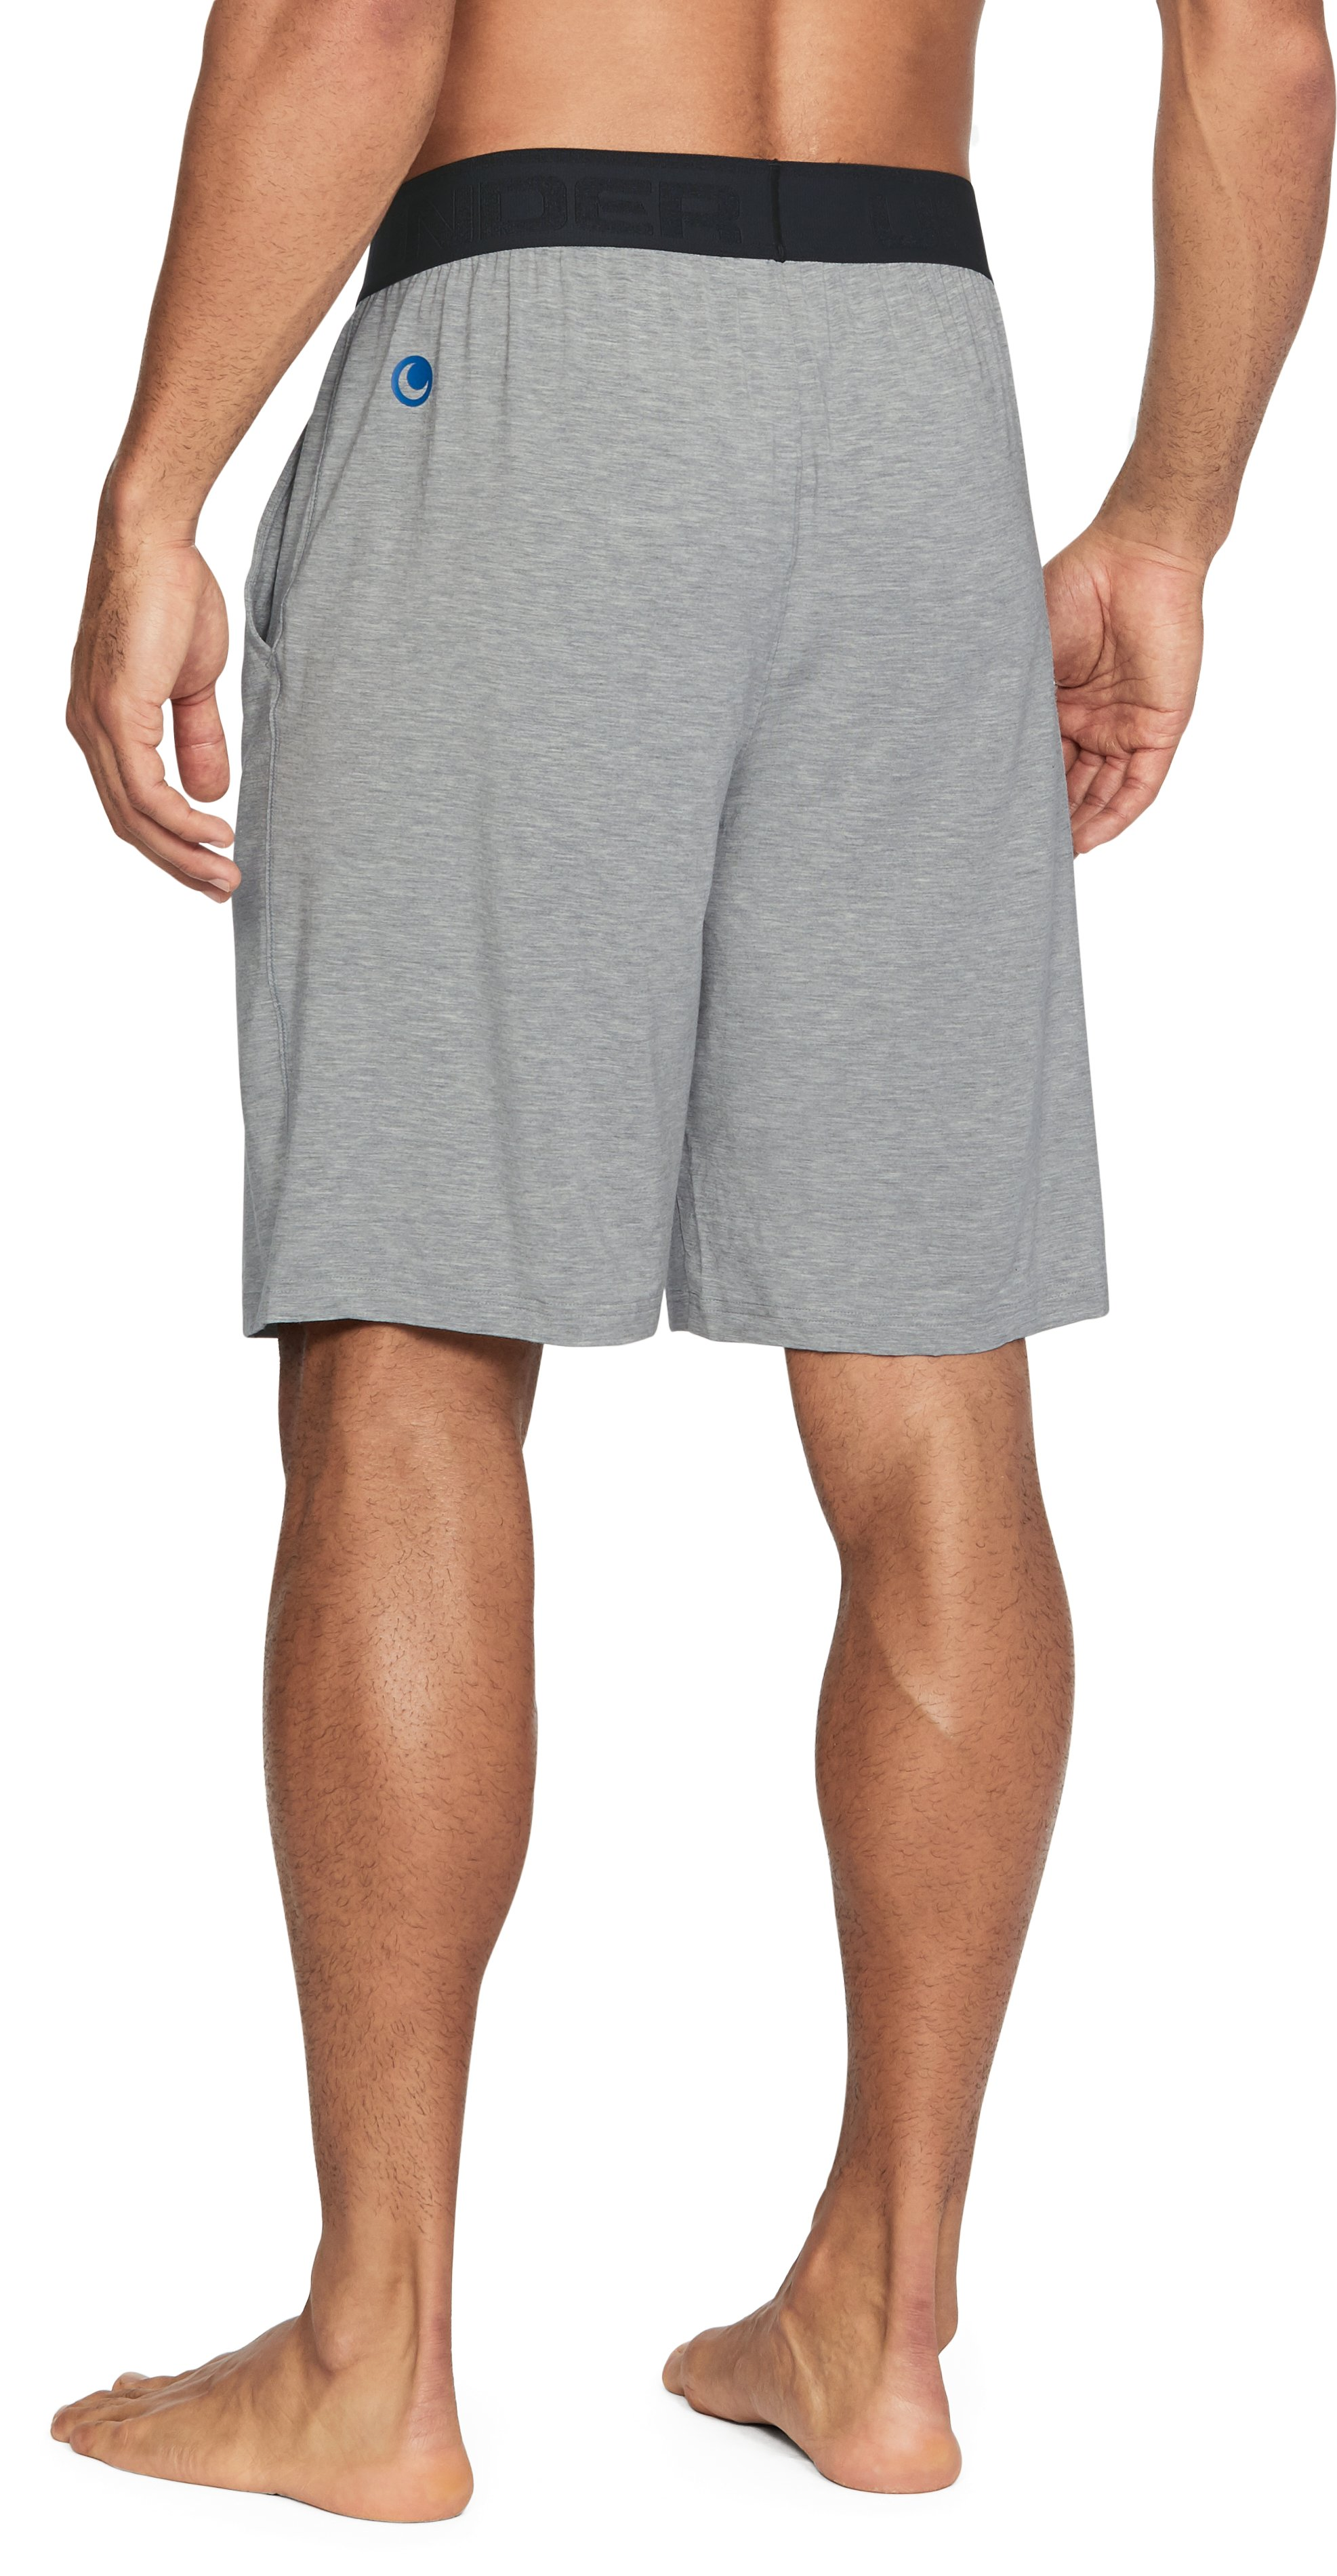 Men's Athlete Recovery Ultra Comfort Sleepwear Shorts, True Gray Heather, undefined